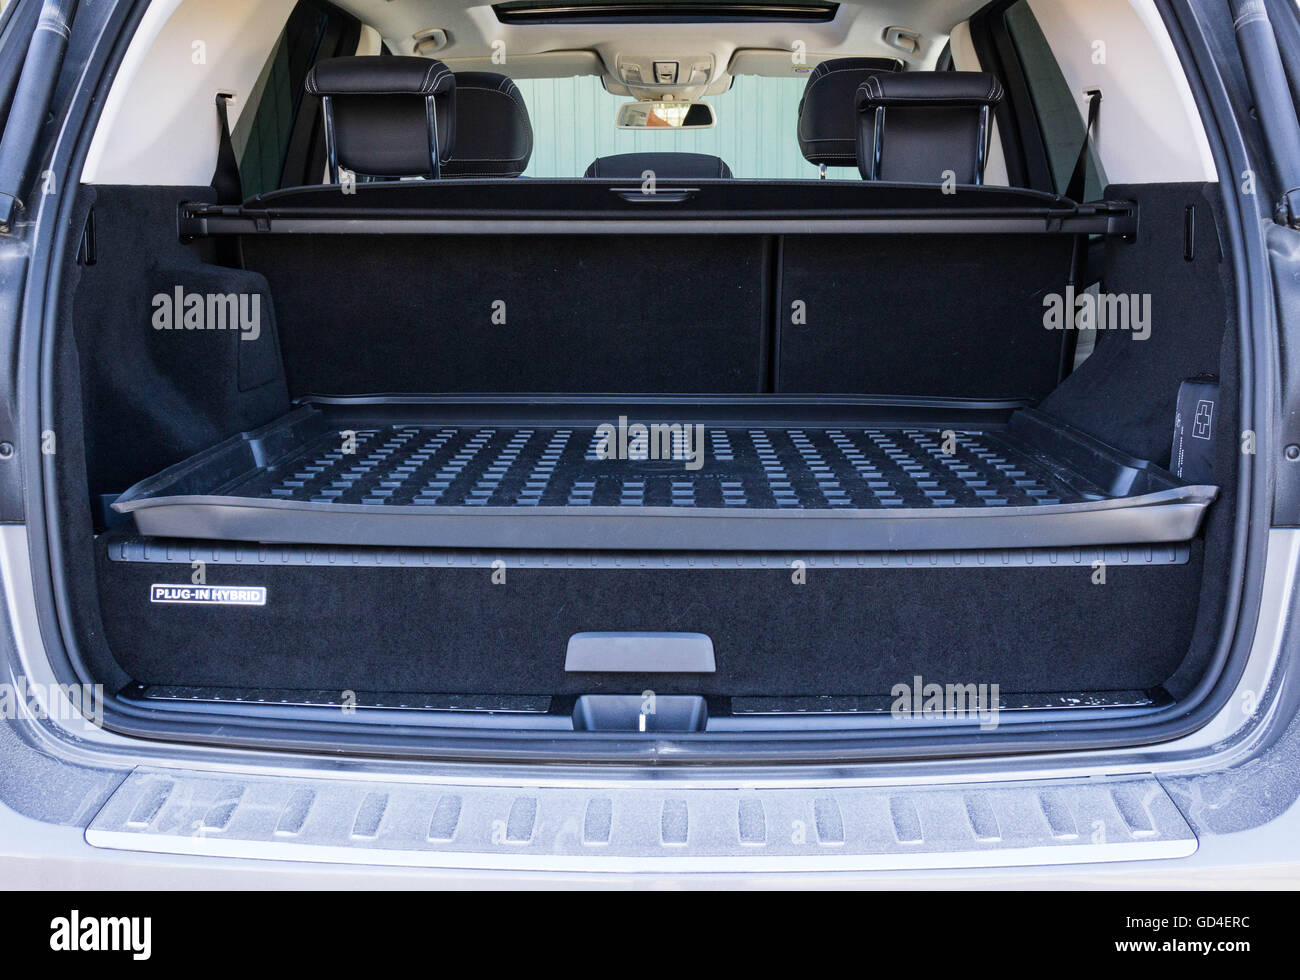 Hybrid suv, with open trunk showing battery package. Stock Photo